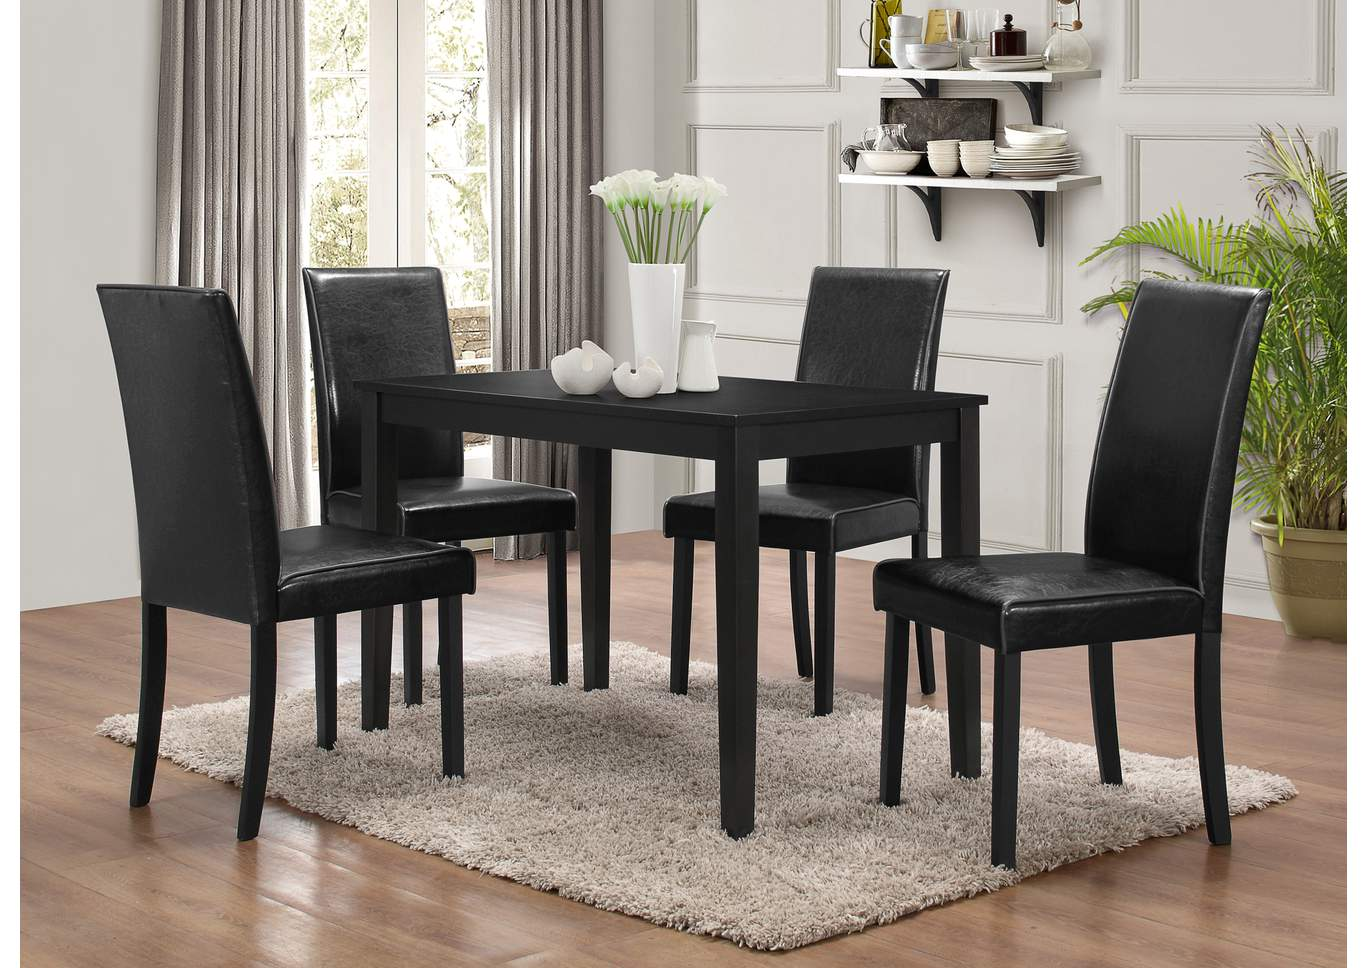 ware house furniture sydney black 5 pack dinette table set